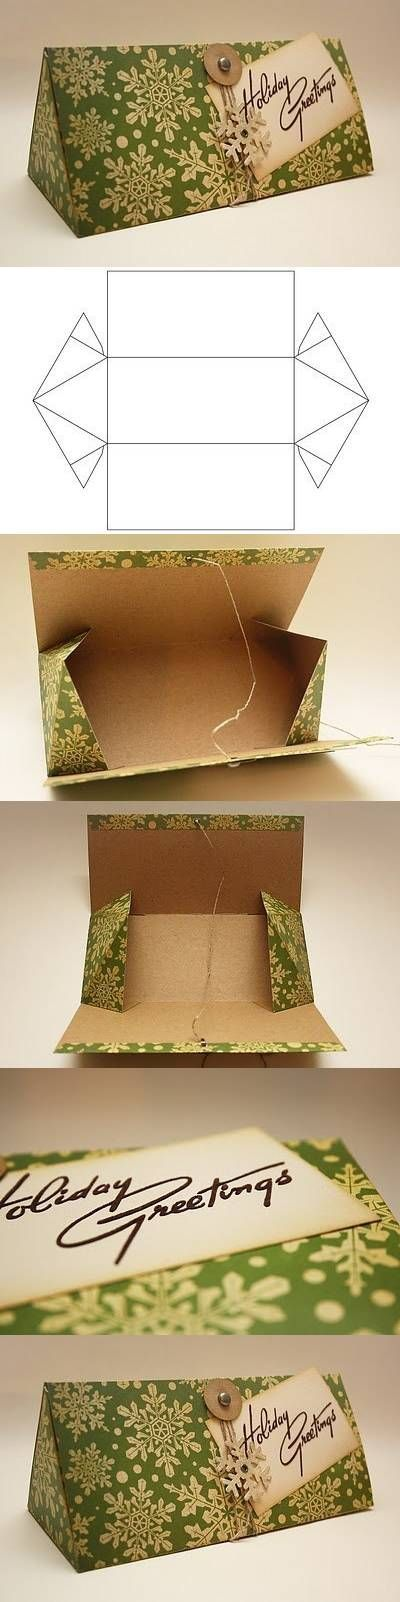 DIY Long Gift Box DIY Projects | UsefulDIY.com Follow Us on Facebook ==> http://www.facebook.com/UsefulDiy